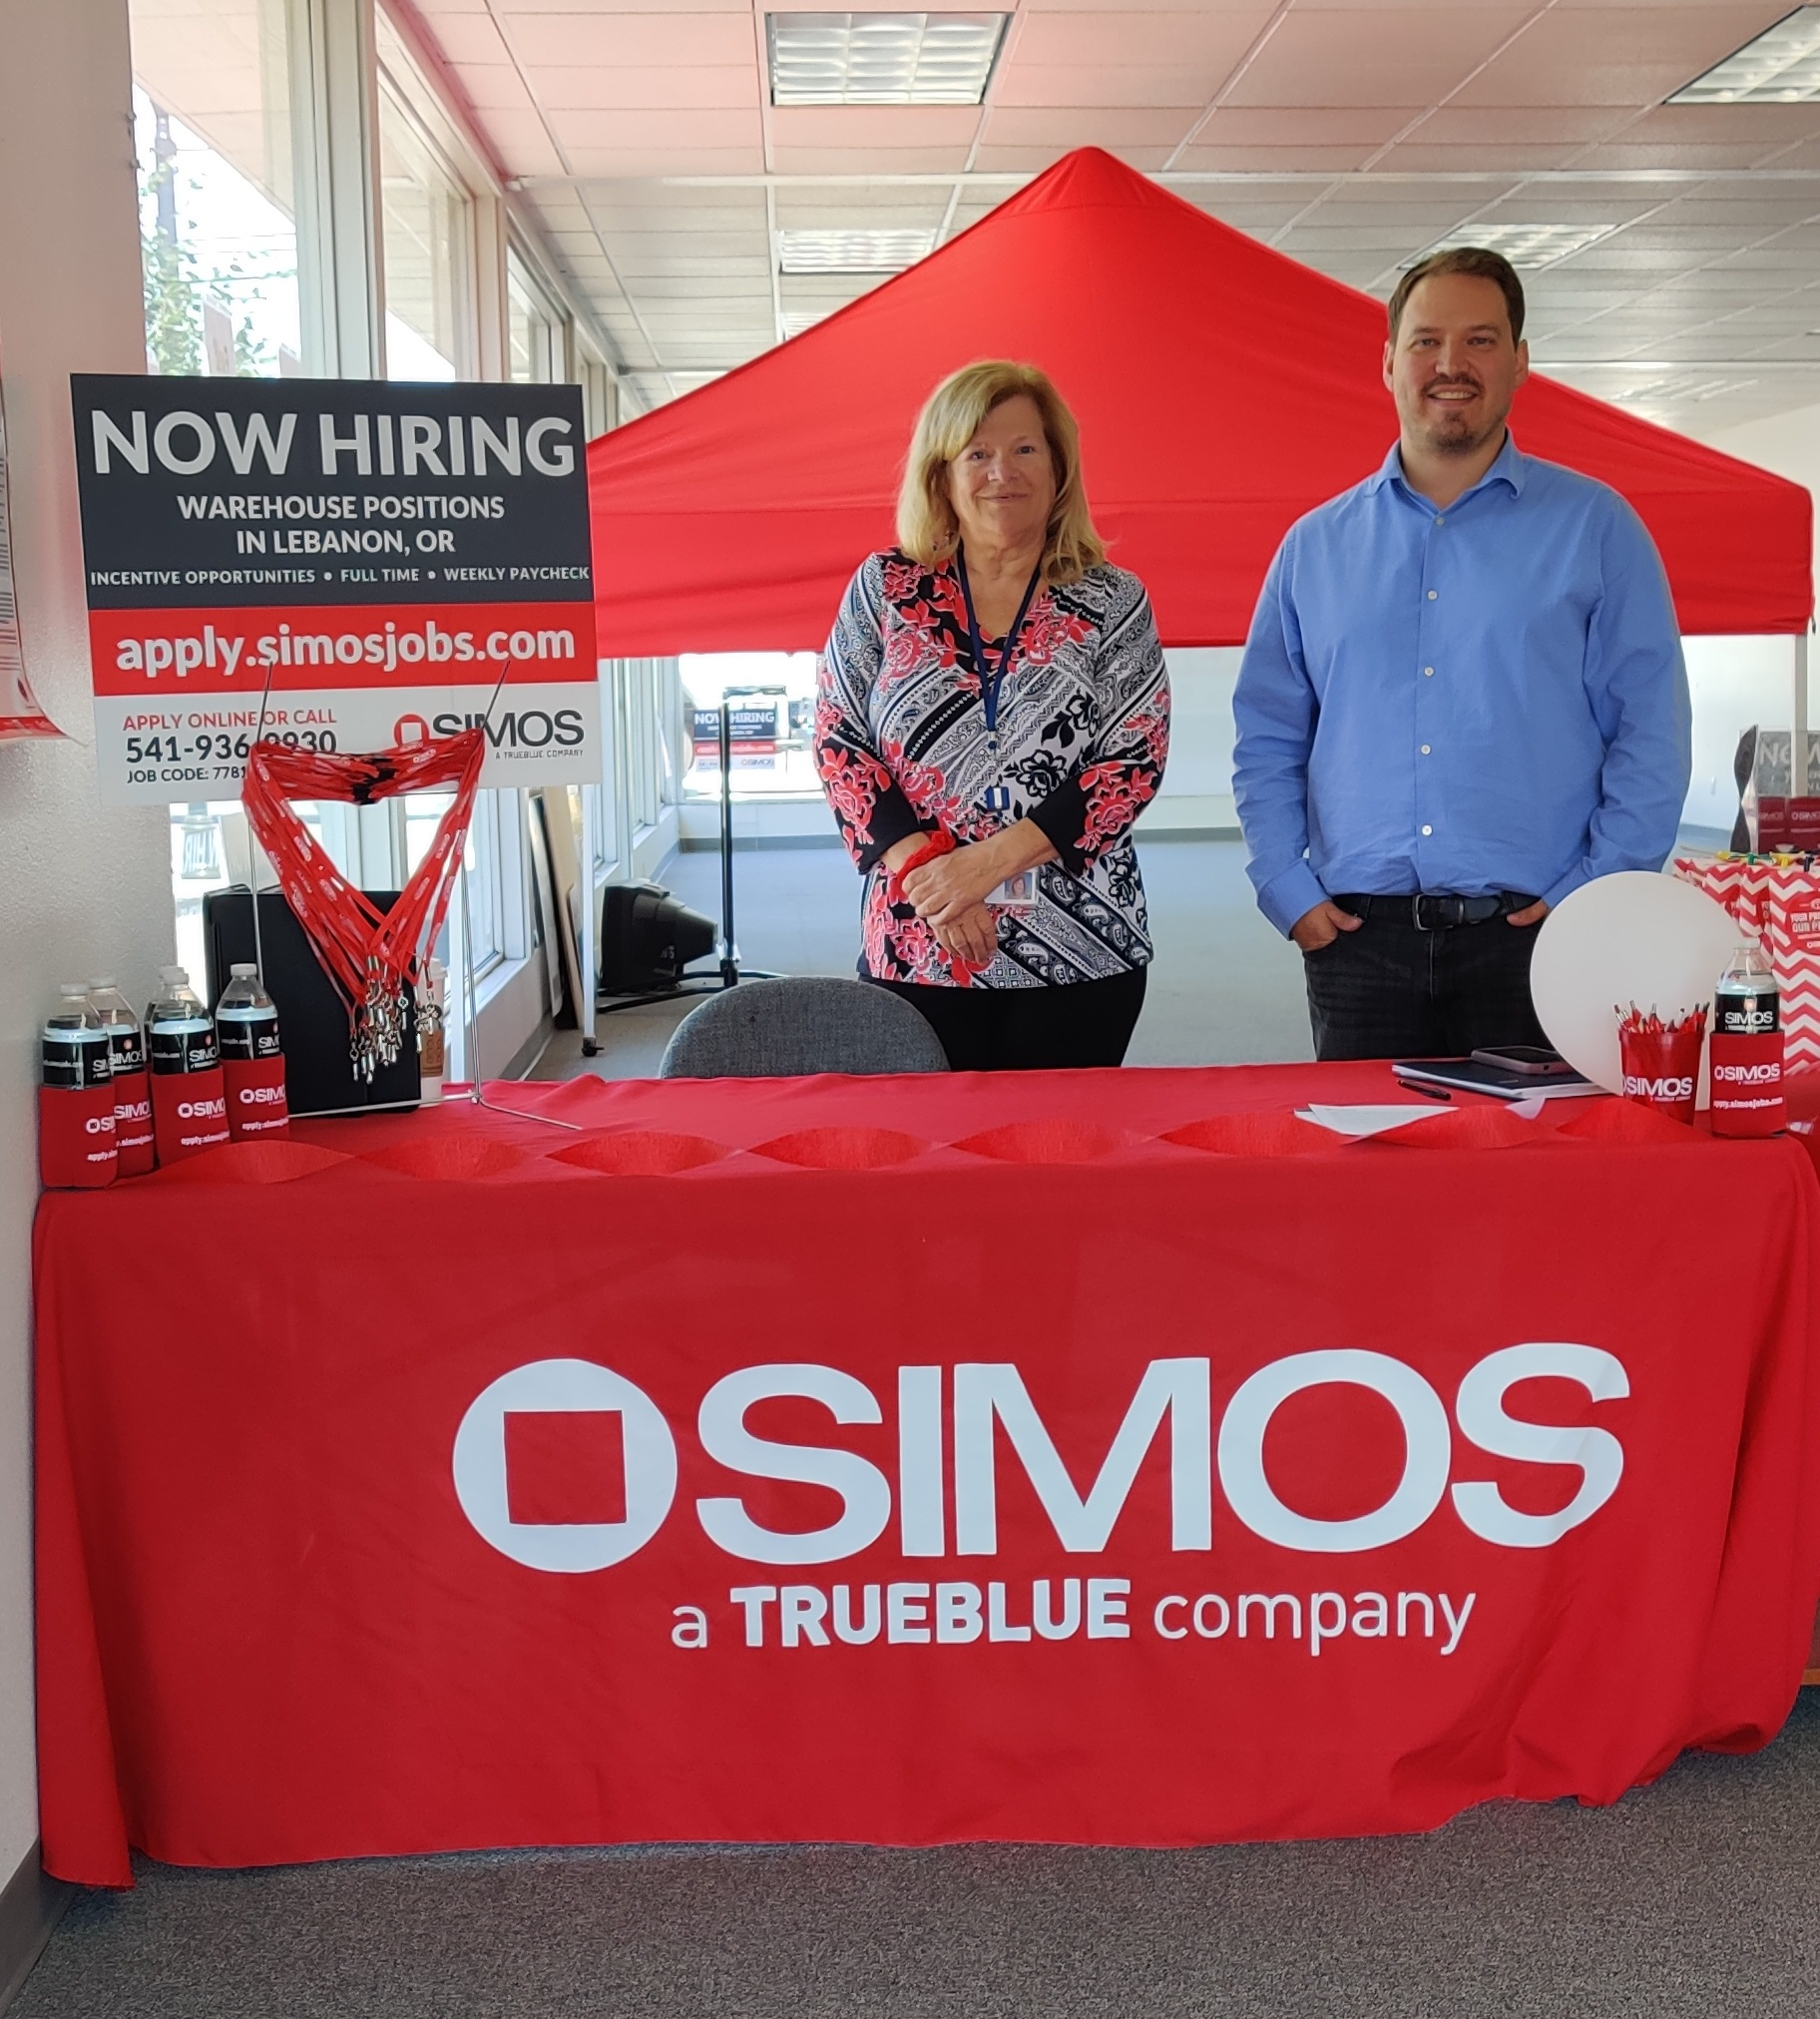 SIMOS partners with Goodwill to help new hires who need new work clothes